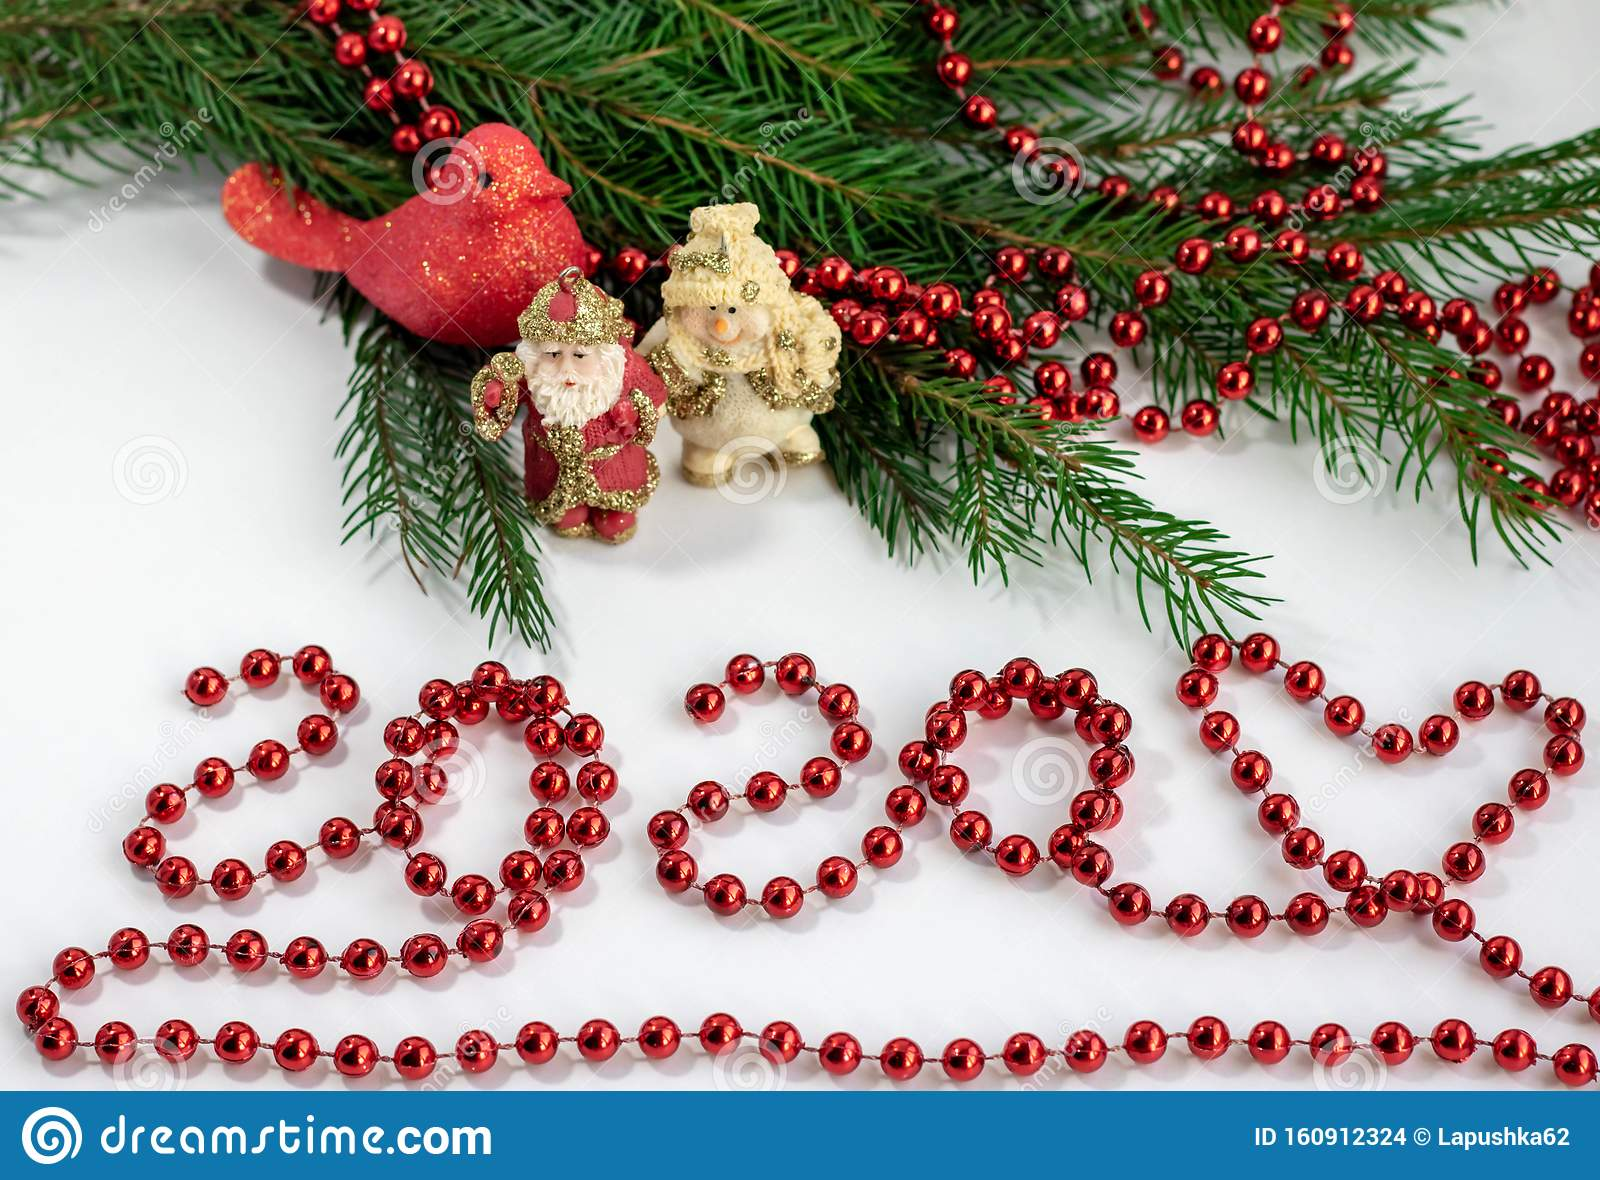 2020 Happy New Year Christmas Decoration Beads And Christmas Tree Idea Of Merry New Year 2020 Holiday Stock Photo Image Of Abstract Candy 160912324